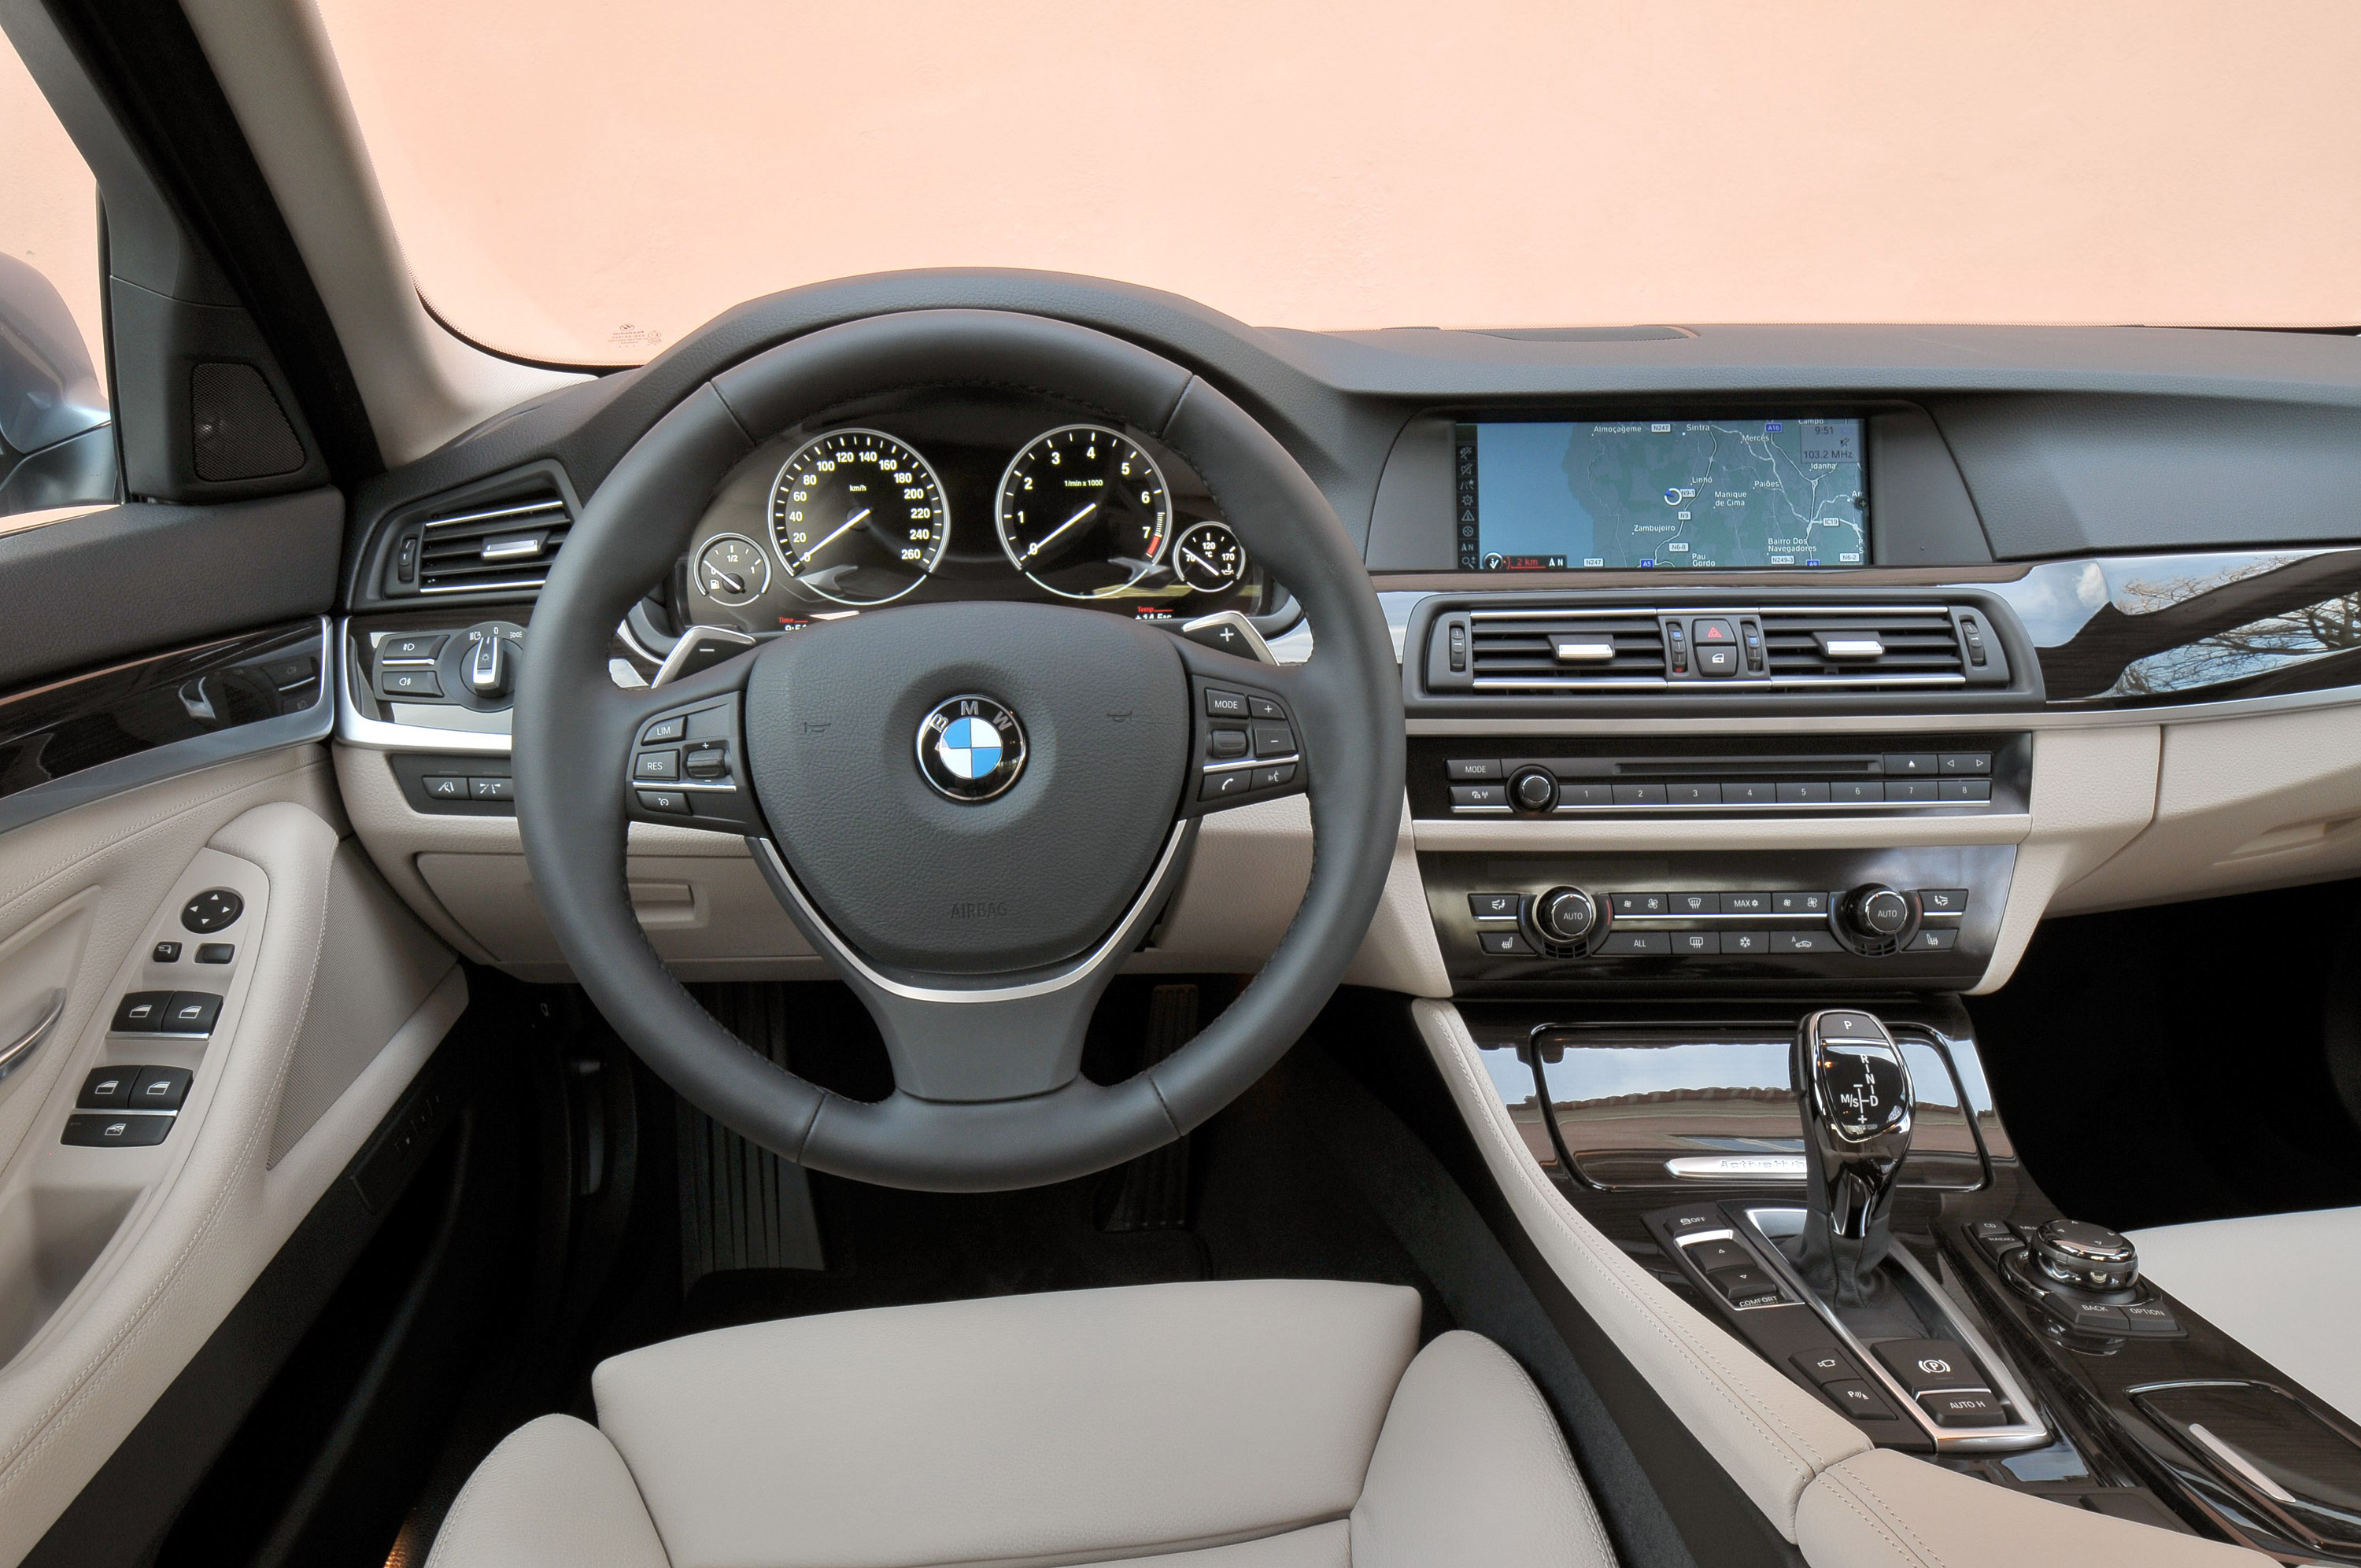 2012 Bmw F10 Active Hybrid 5 Picture 63888